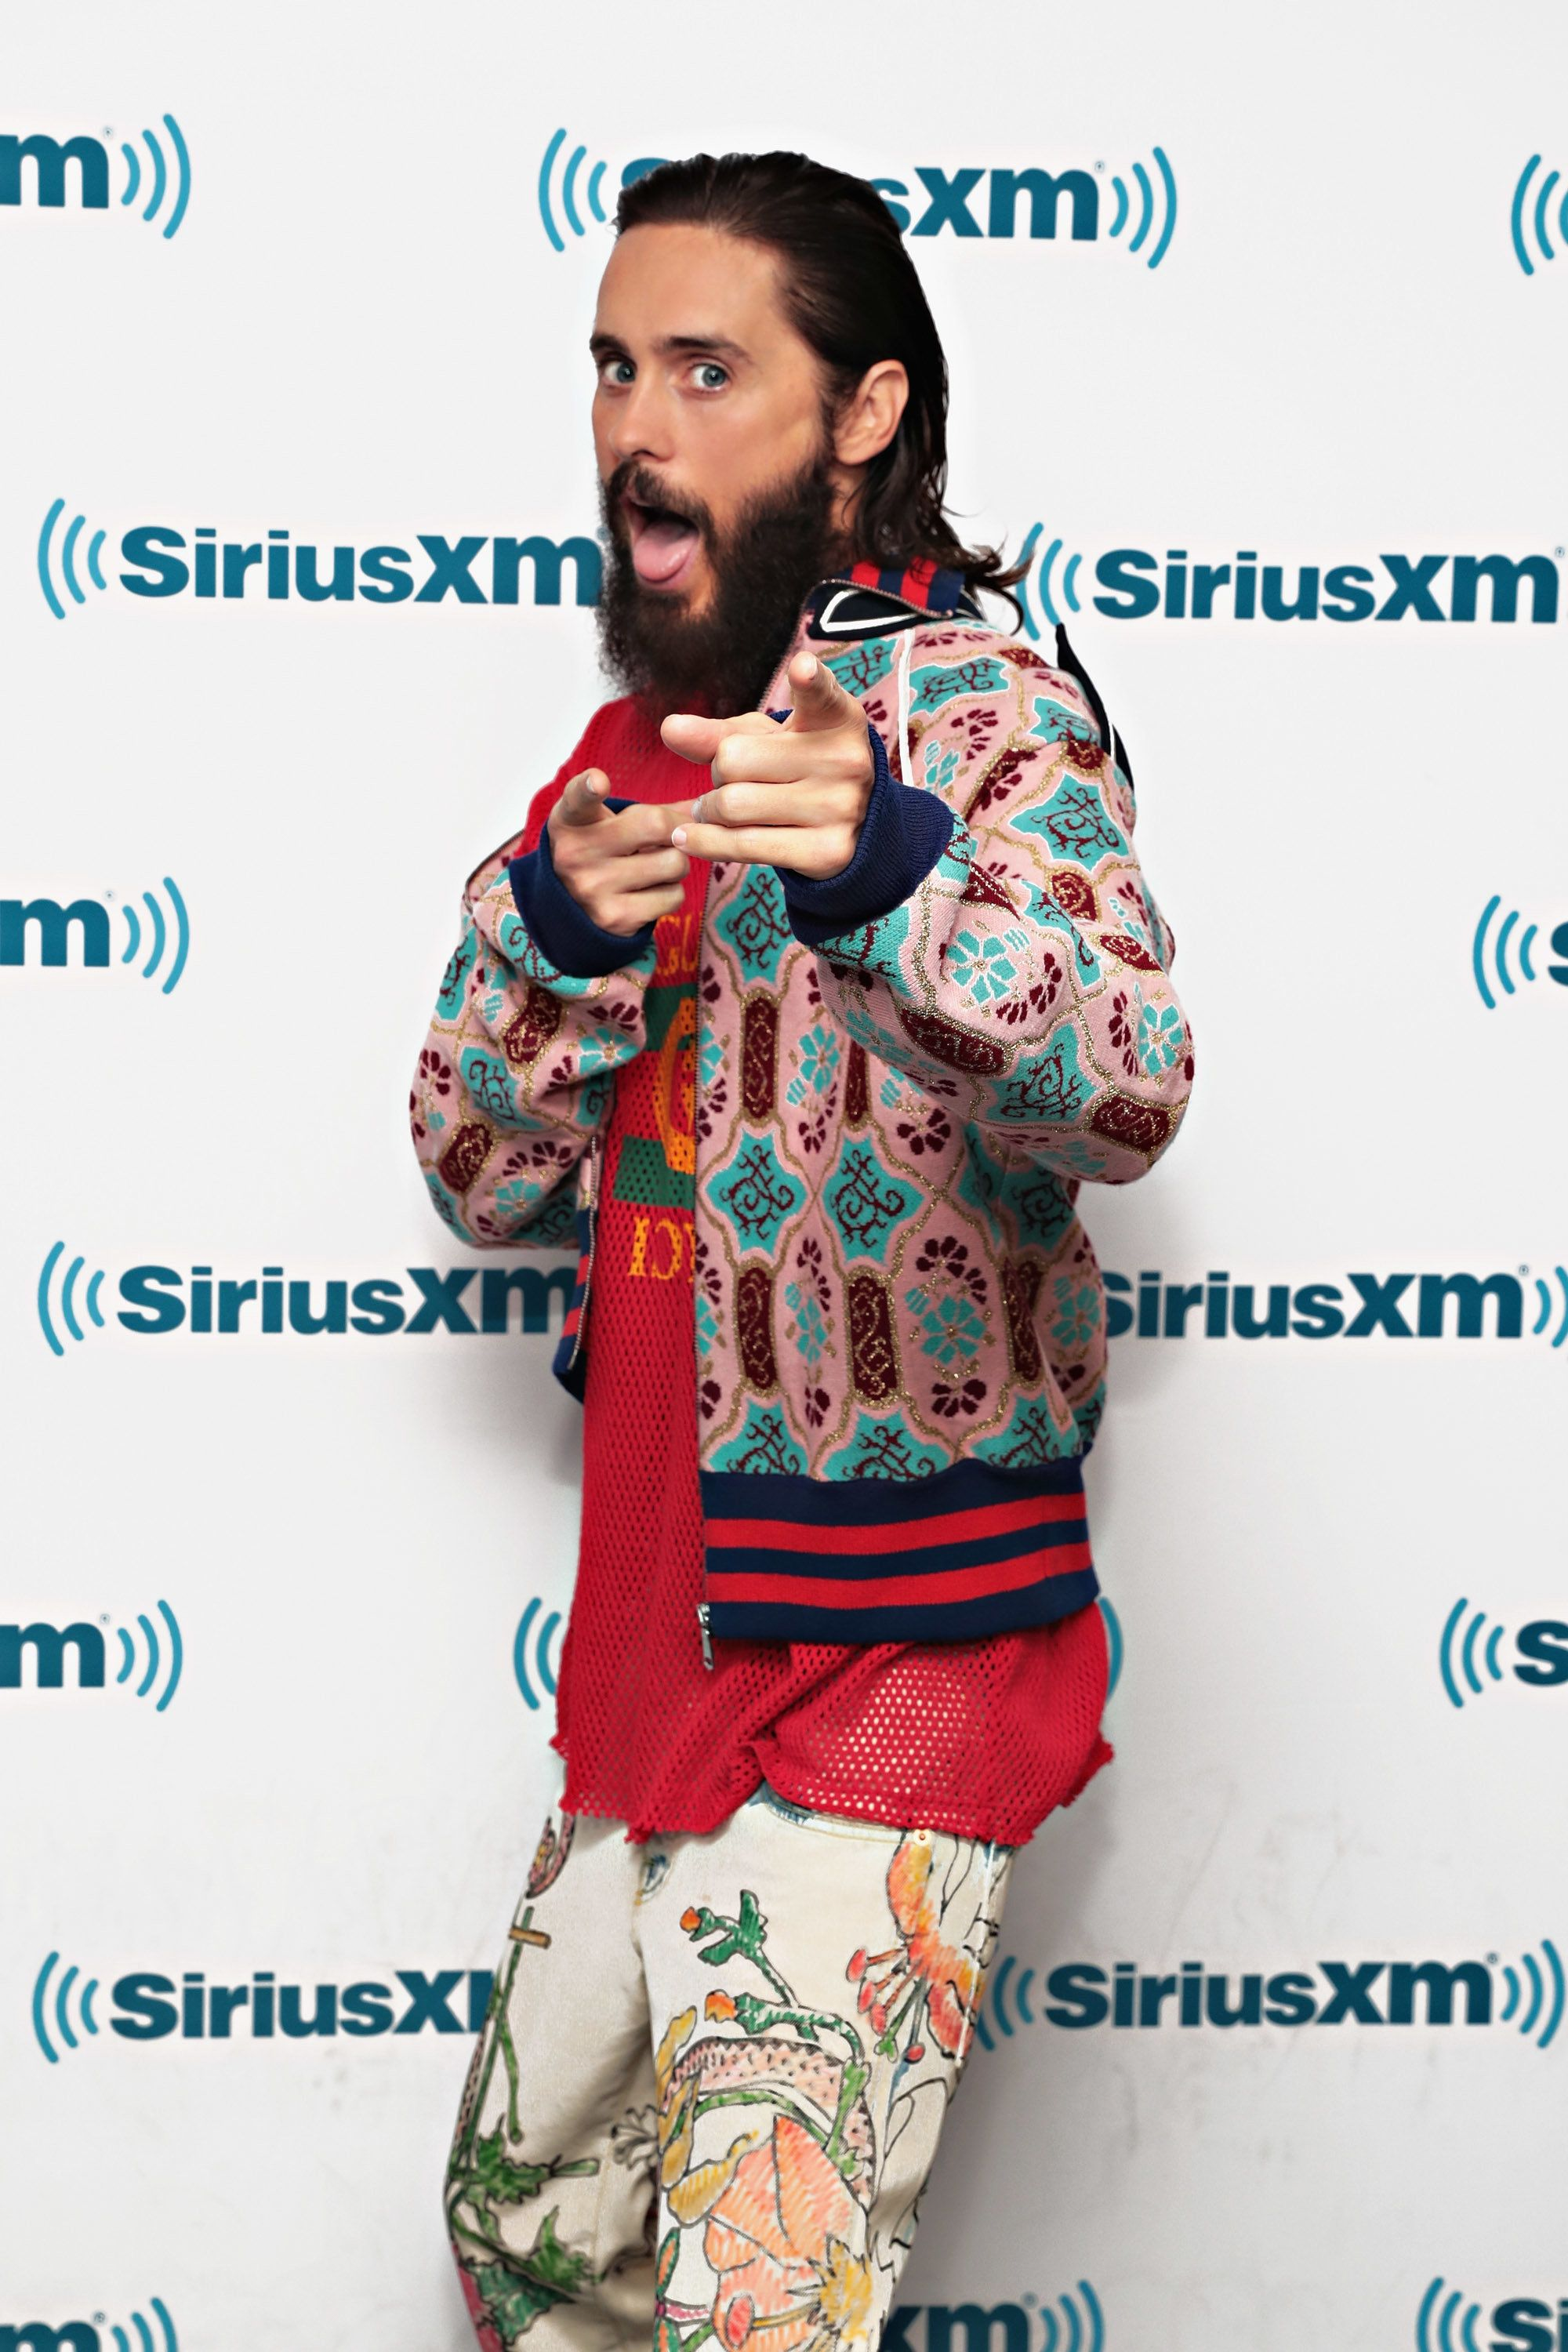 NEW YORK, NY - SEPTEMBER 27:  Actor Jared Leto visits the SiriusXM Studios on September 27, 2017 in New York City.  (Photo by Cindy Ord/Getty Images)